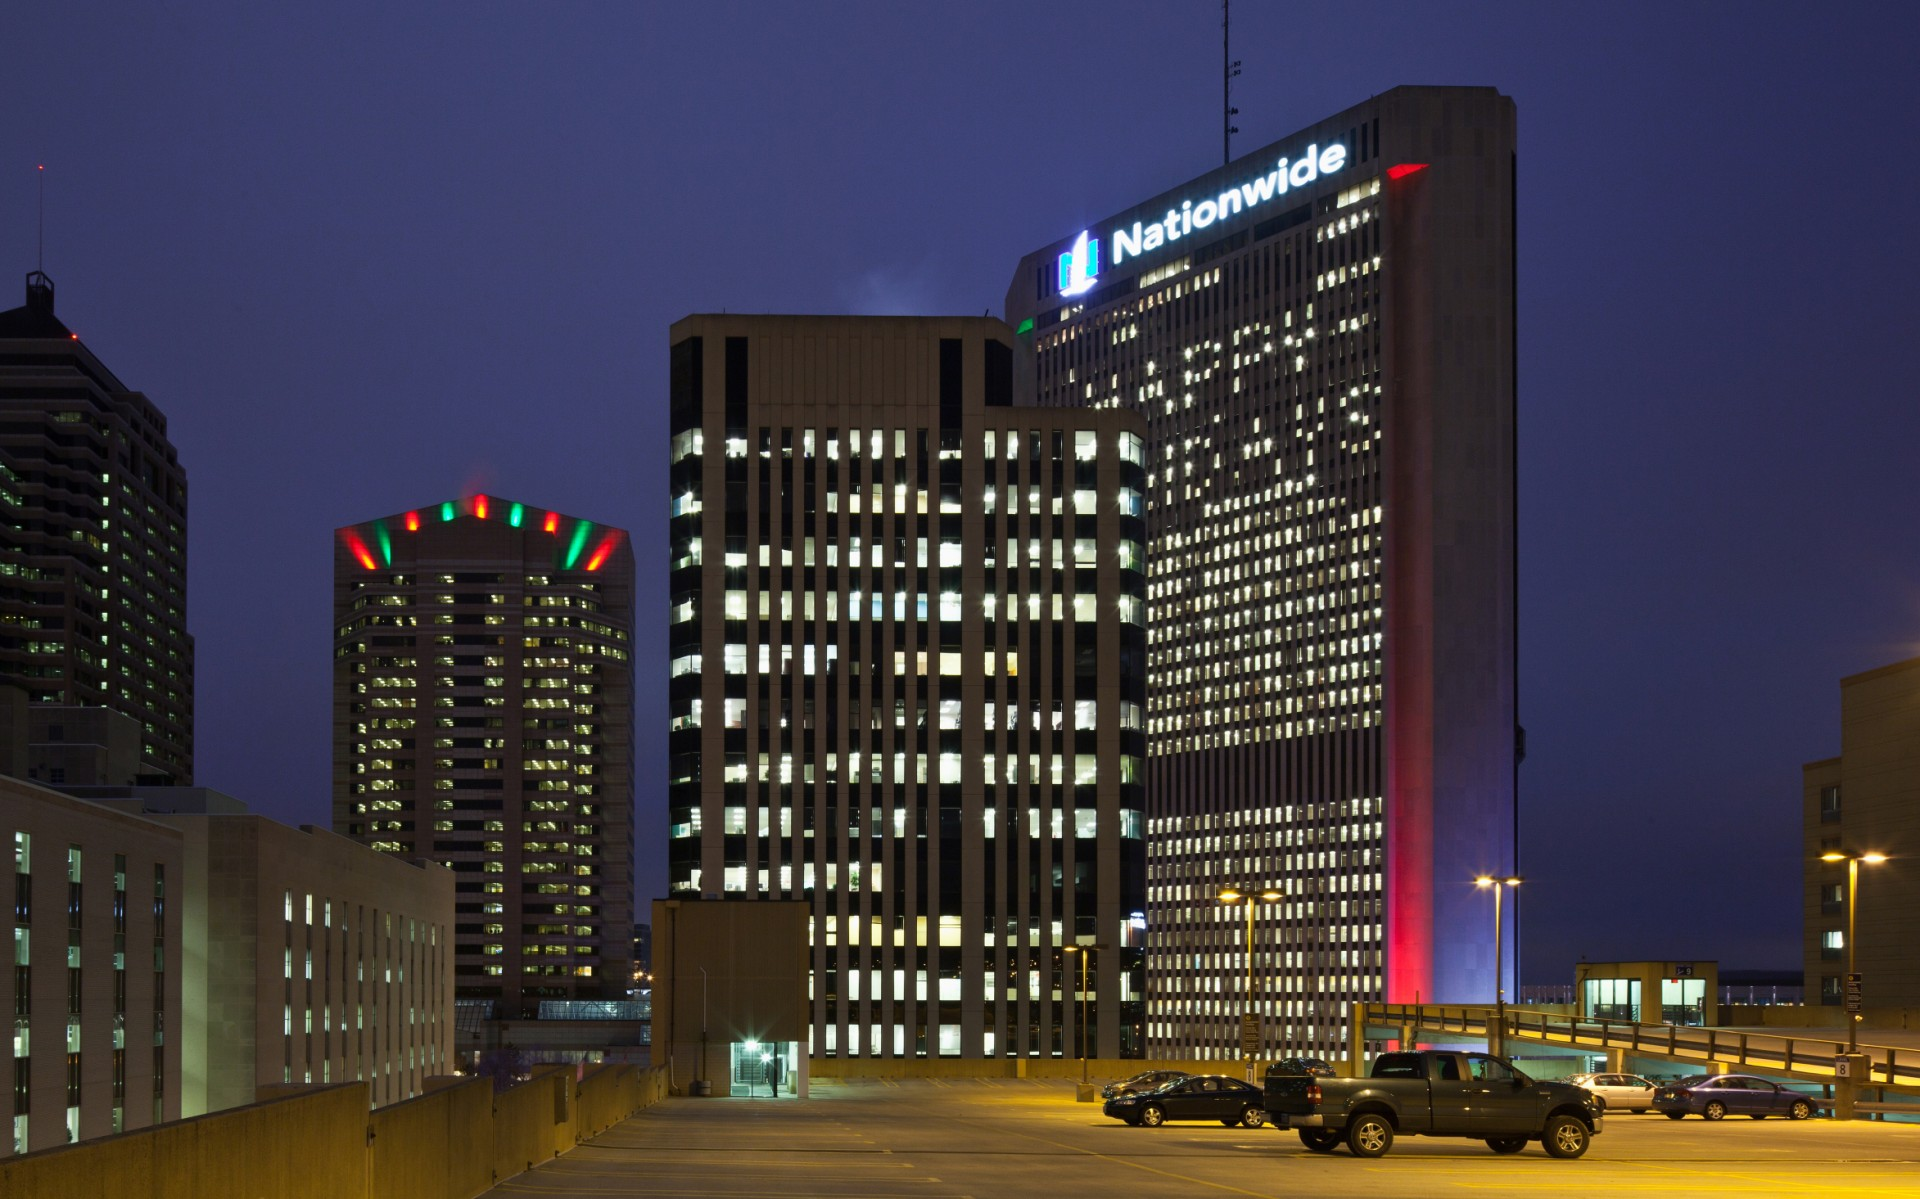 At Three Nationwide Plaza, 1000w PAR64 Halogen lamps were replaced with RGBW versions of Lumenbeam LBX luminaires.